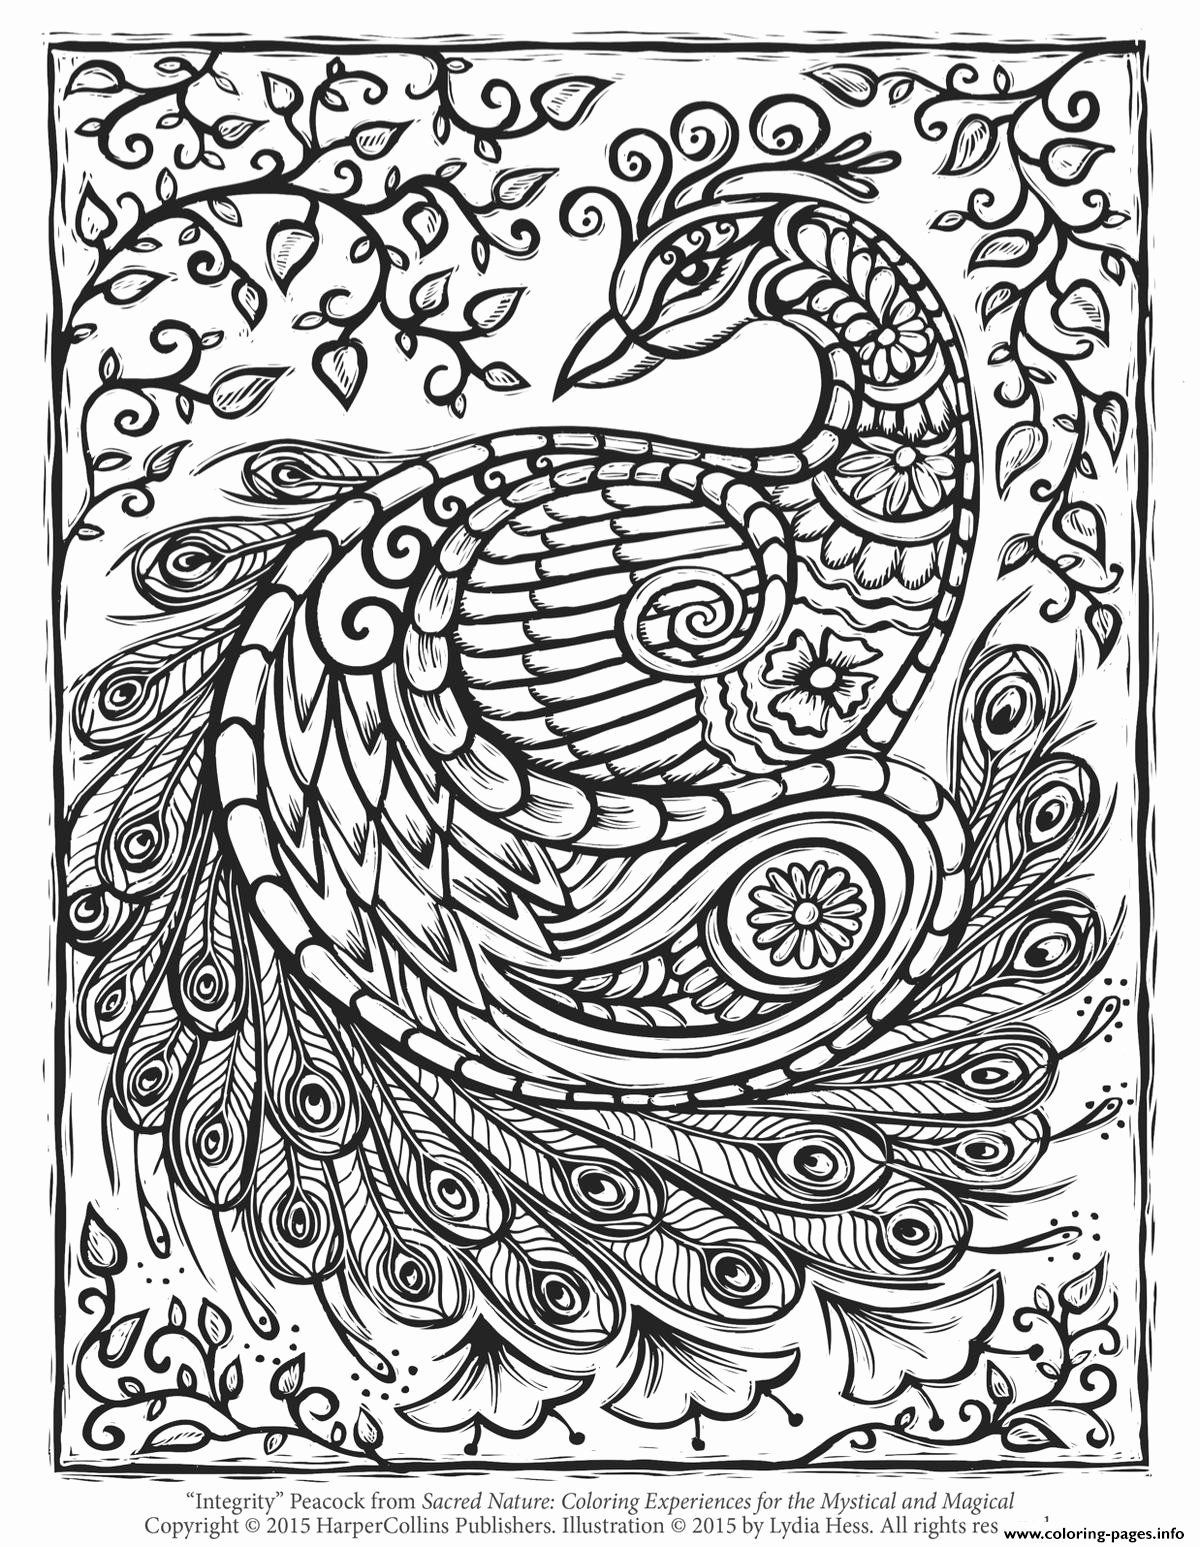 Nature Coloring Pages For Adults New Coloring Books Outstanding Advanced Coloring Pages F Peacock Coloring Pages Unicorn Coloring Pages Abstract Coloring Pages